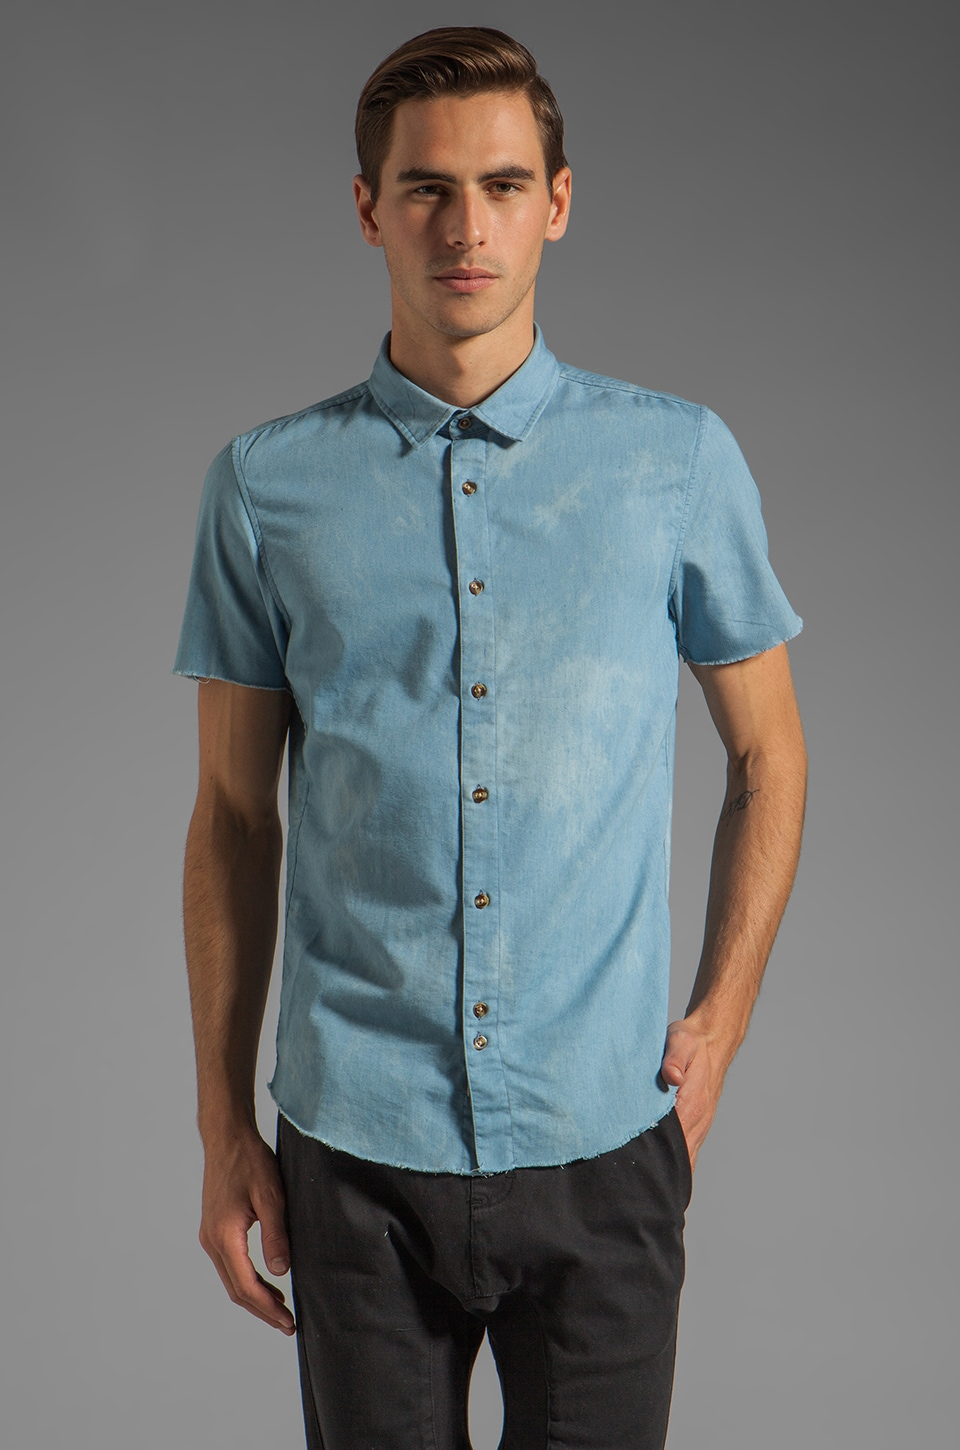 Zanerobe Cirrus Short Sleeve Shirt in Indigo